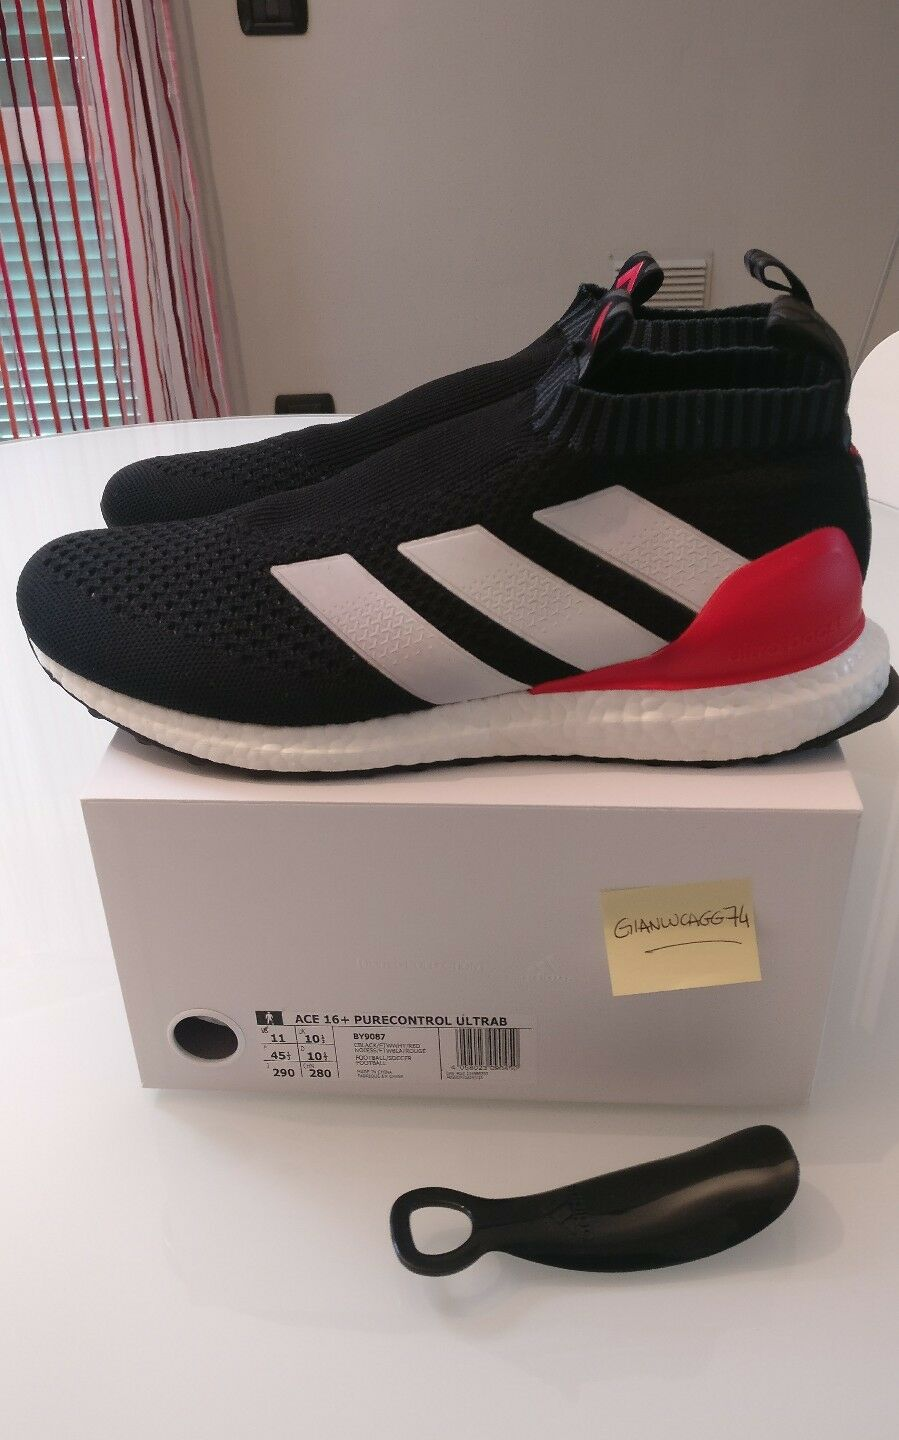 Adidas ACE 16+ purecontrol ultra boost us 11